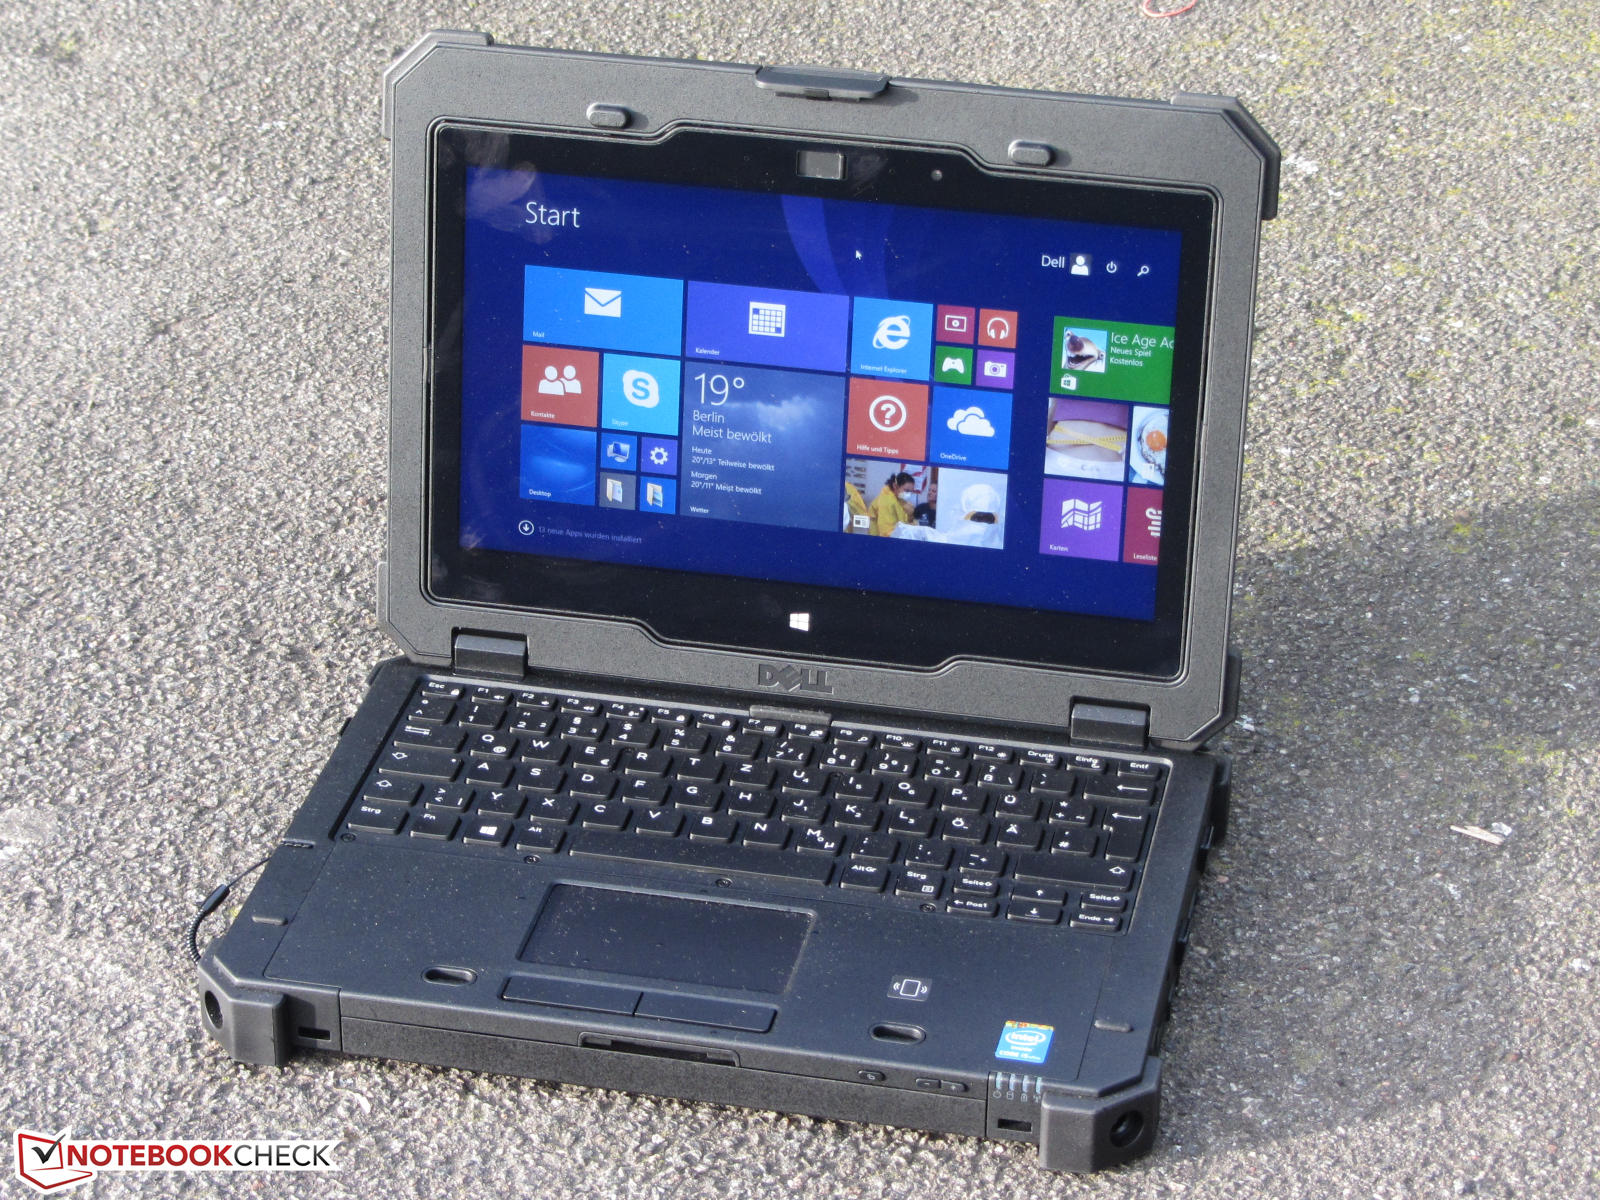 dell latitude 12 rugged extreme - notebookcheck external reviews